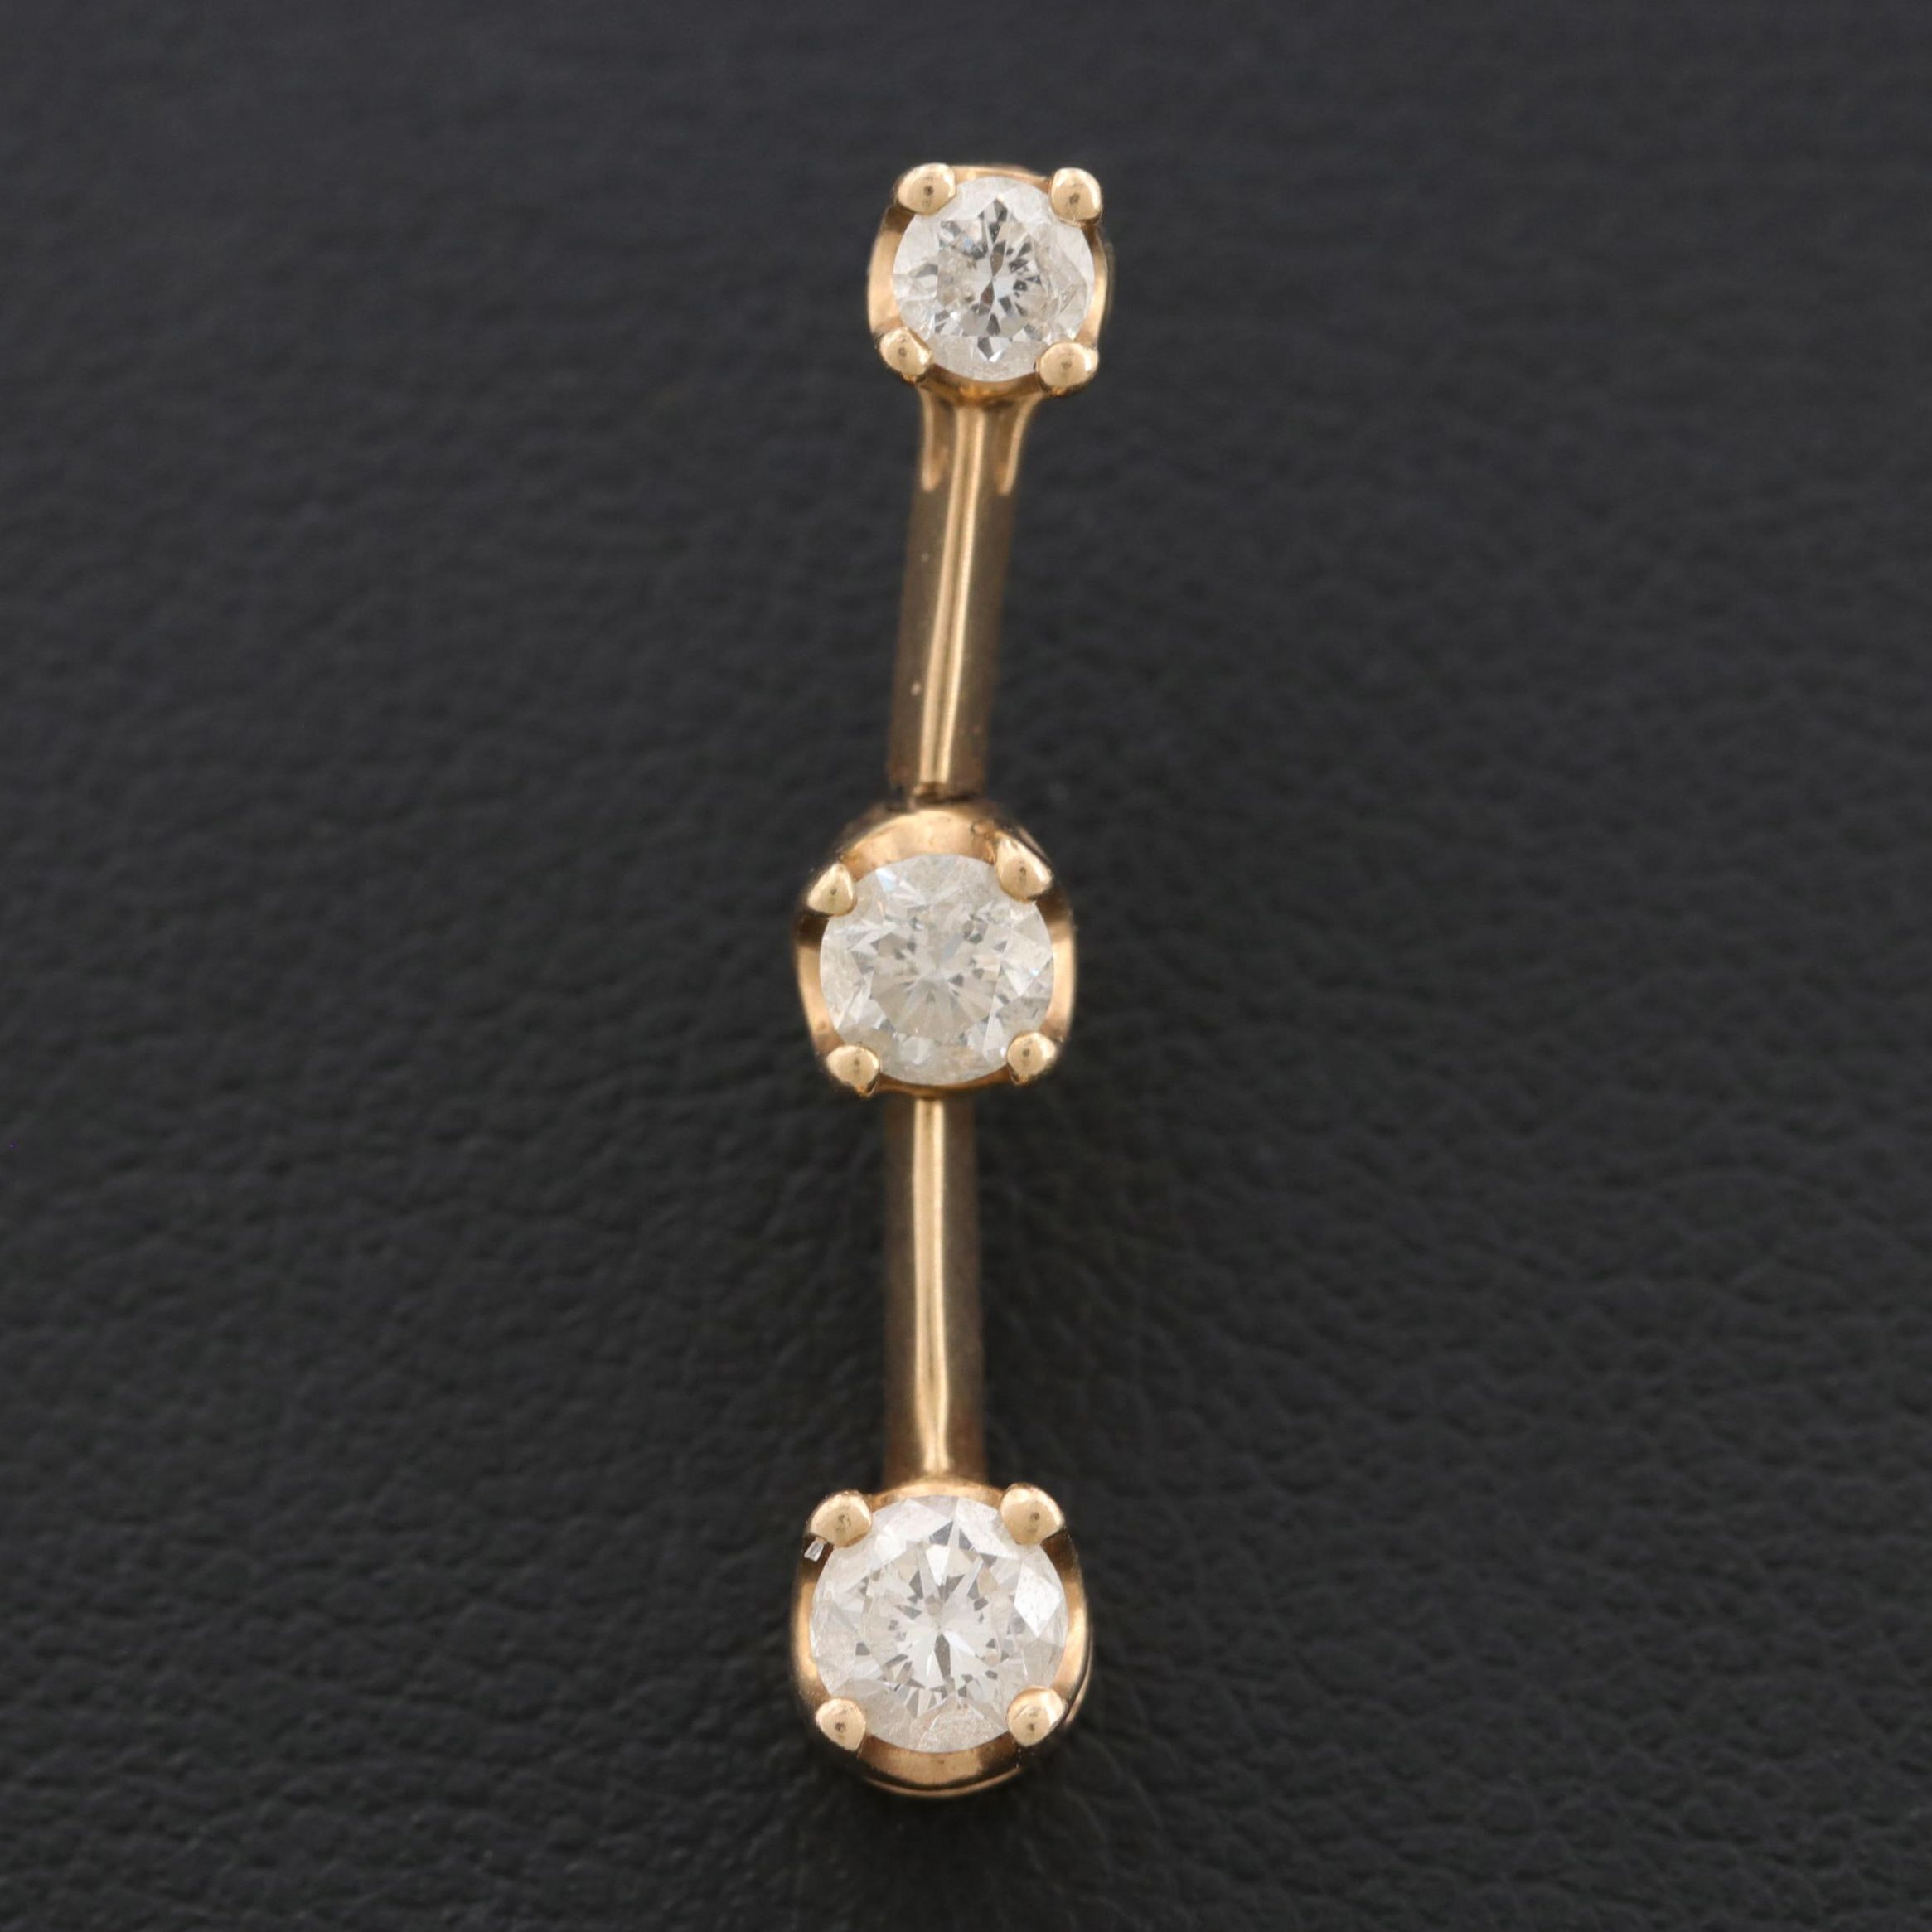 14K Yellow Gold Diamond Articulated Bar Pendant